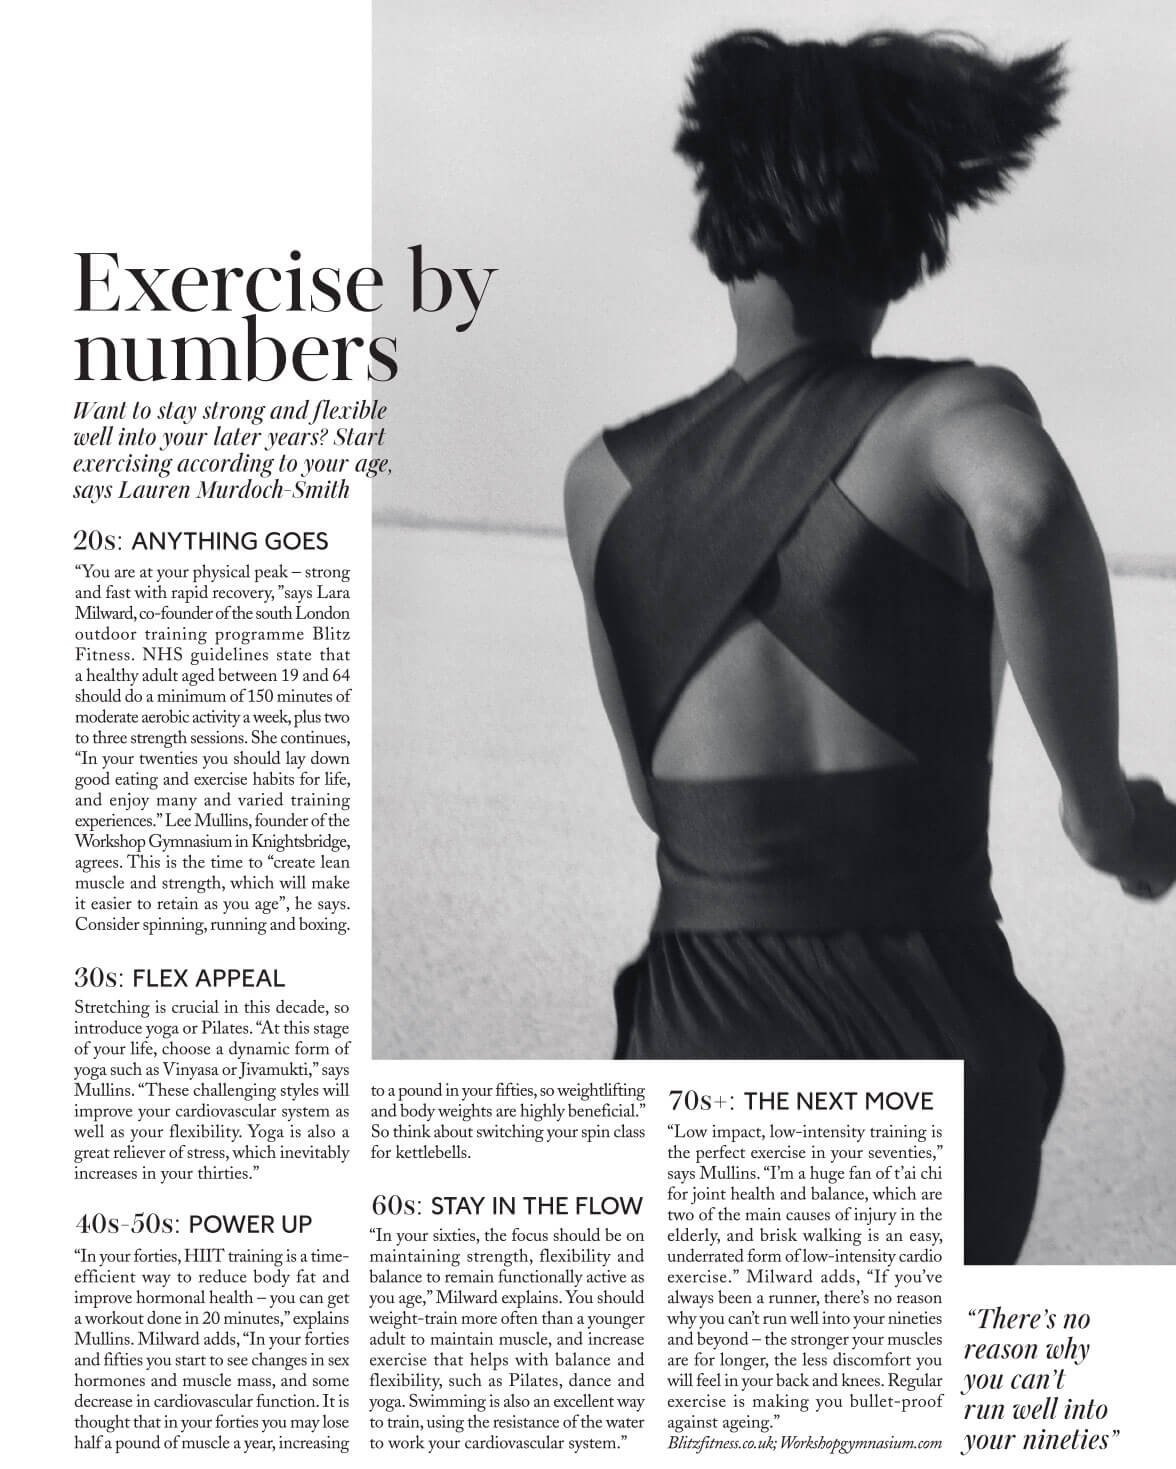 Lara London Post Exercise By numbers page 1